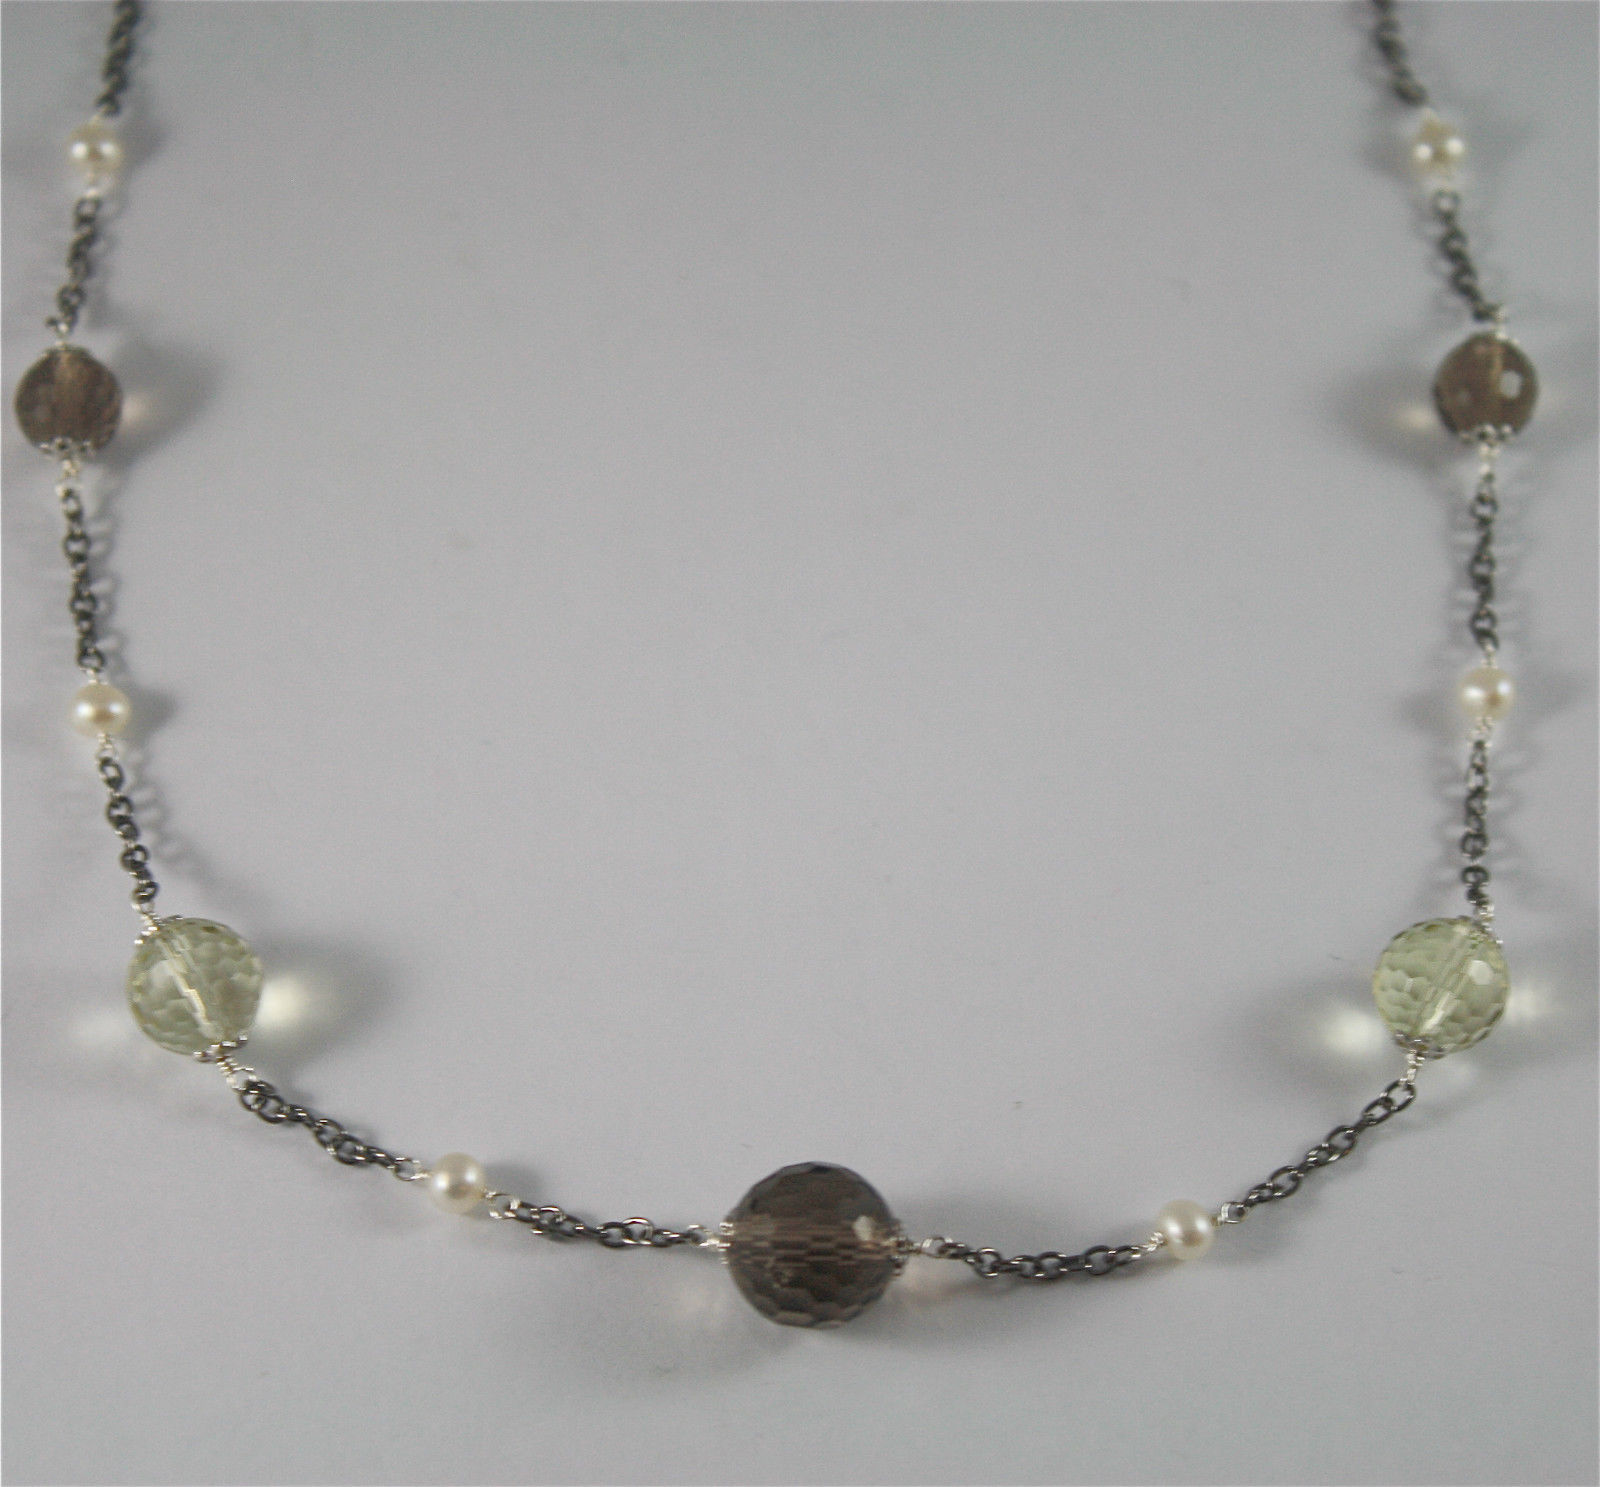 .925 BURNISHED SILVER NECKLACE,  WHITE PEARLS, SMOKY AND LEMON QUARTZ 17.72 INCH